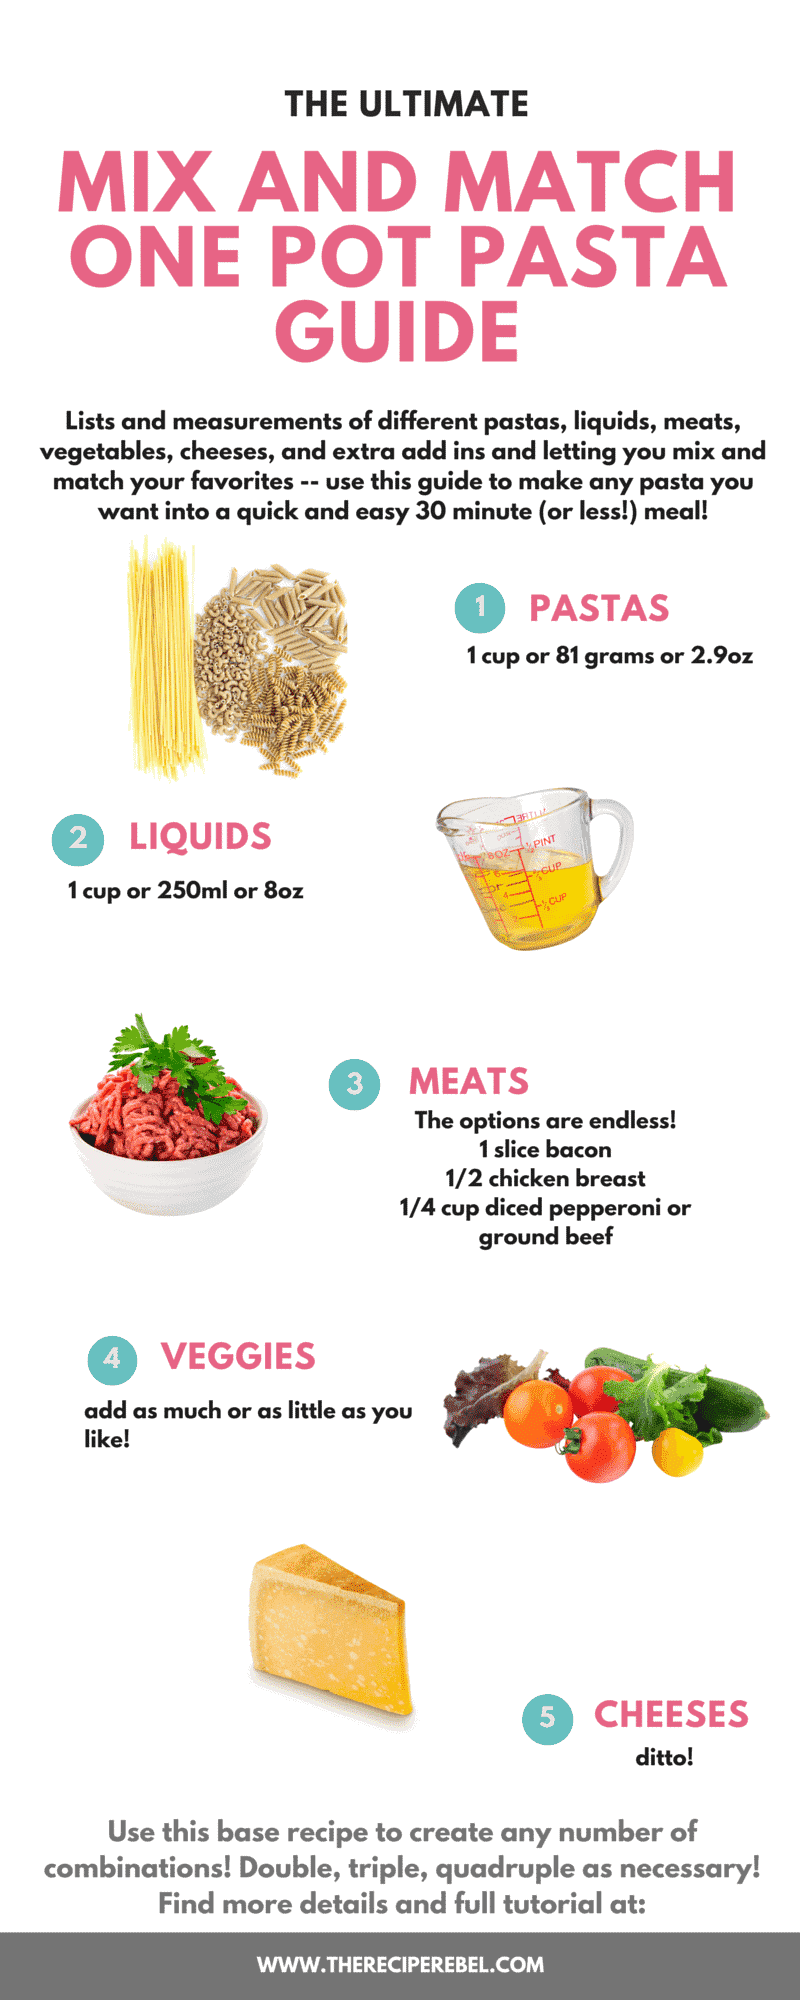 I'm giving you lists and measurements of different pastas, liquids, meats, vegetables, cheeses, and extra add ins and letting you mix and match your favorites -- use this guide to make any pasta you want into a quick and easy 30 minute (or less!) meal!